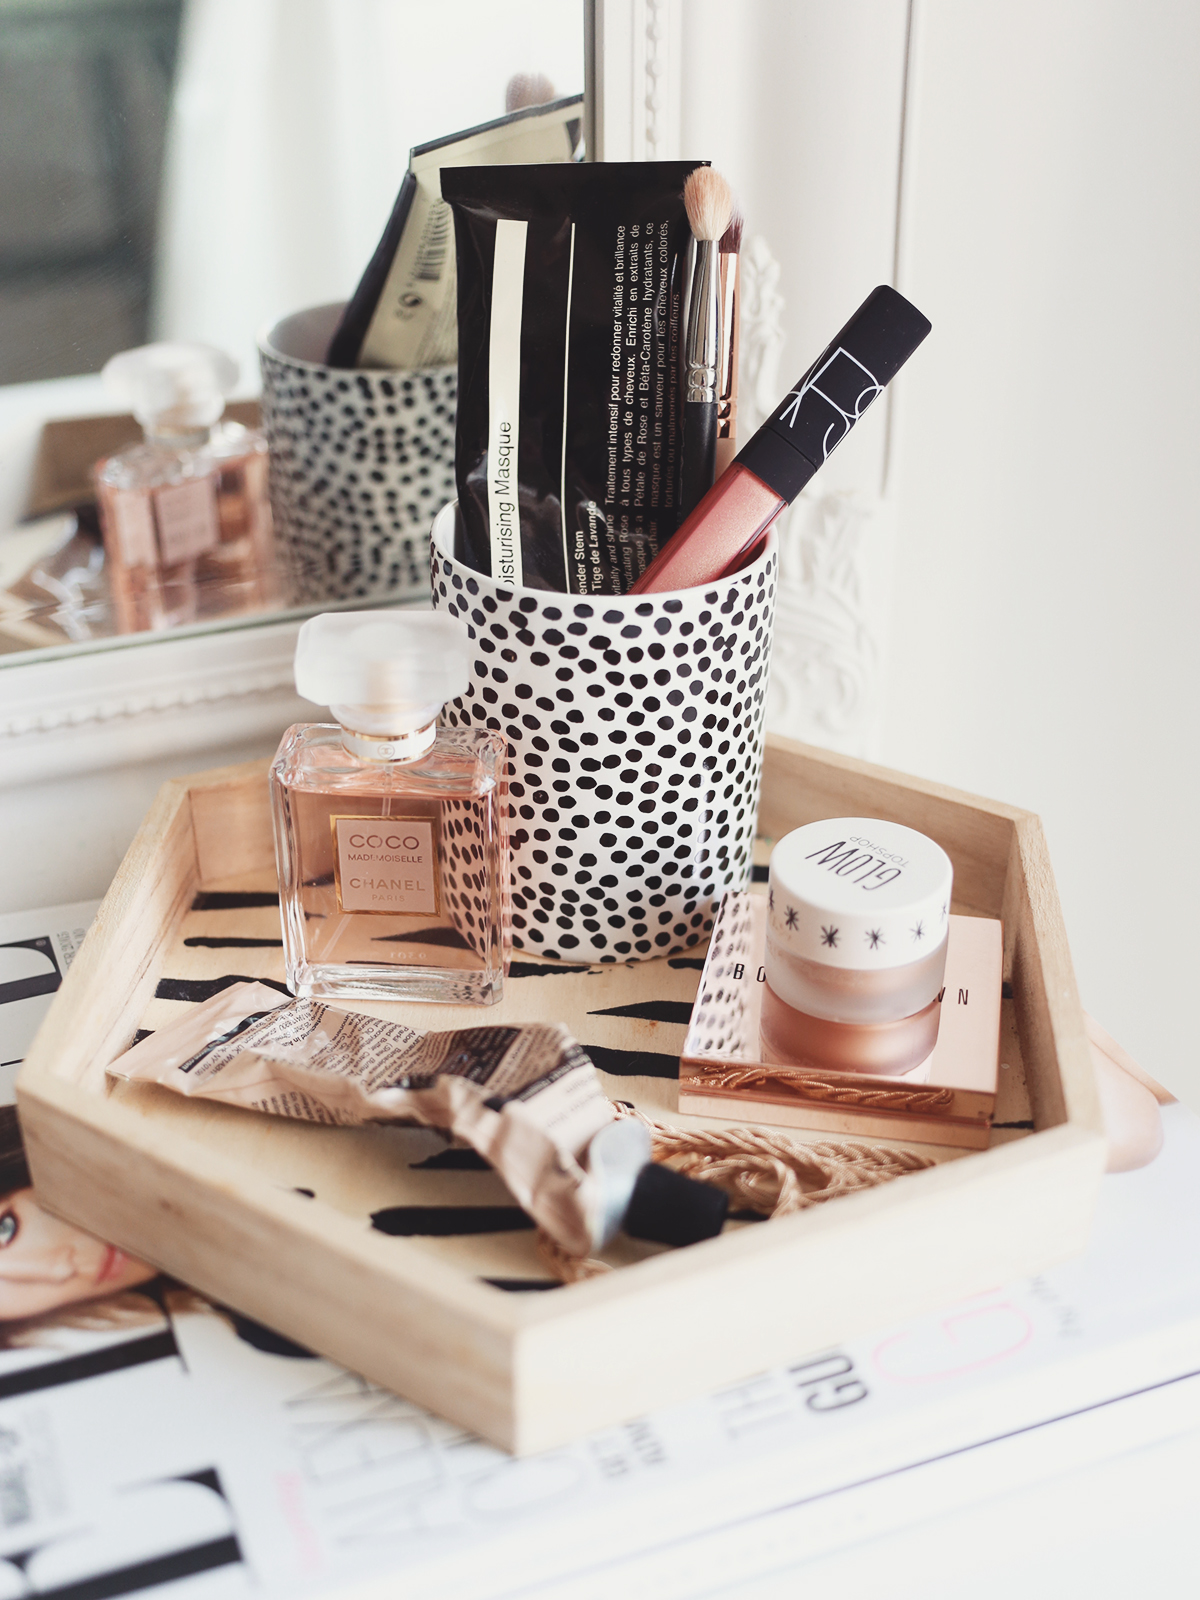 Makeup Storage Tips Amp Tricks Kate La Vie Bloglovin